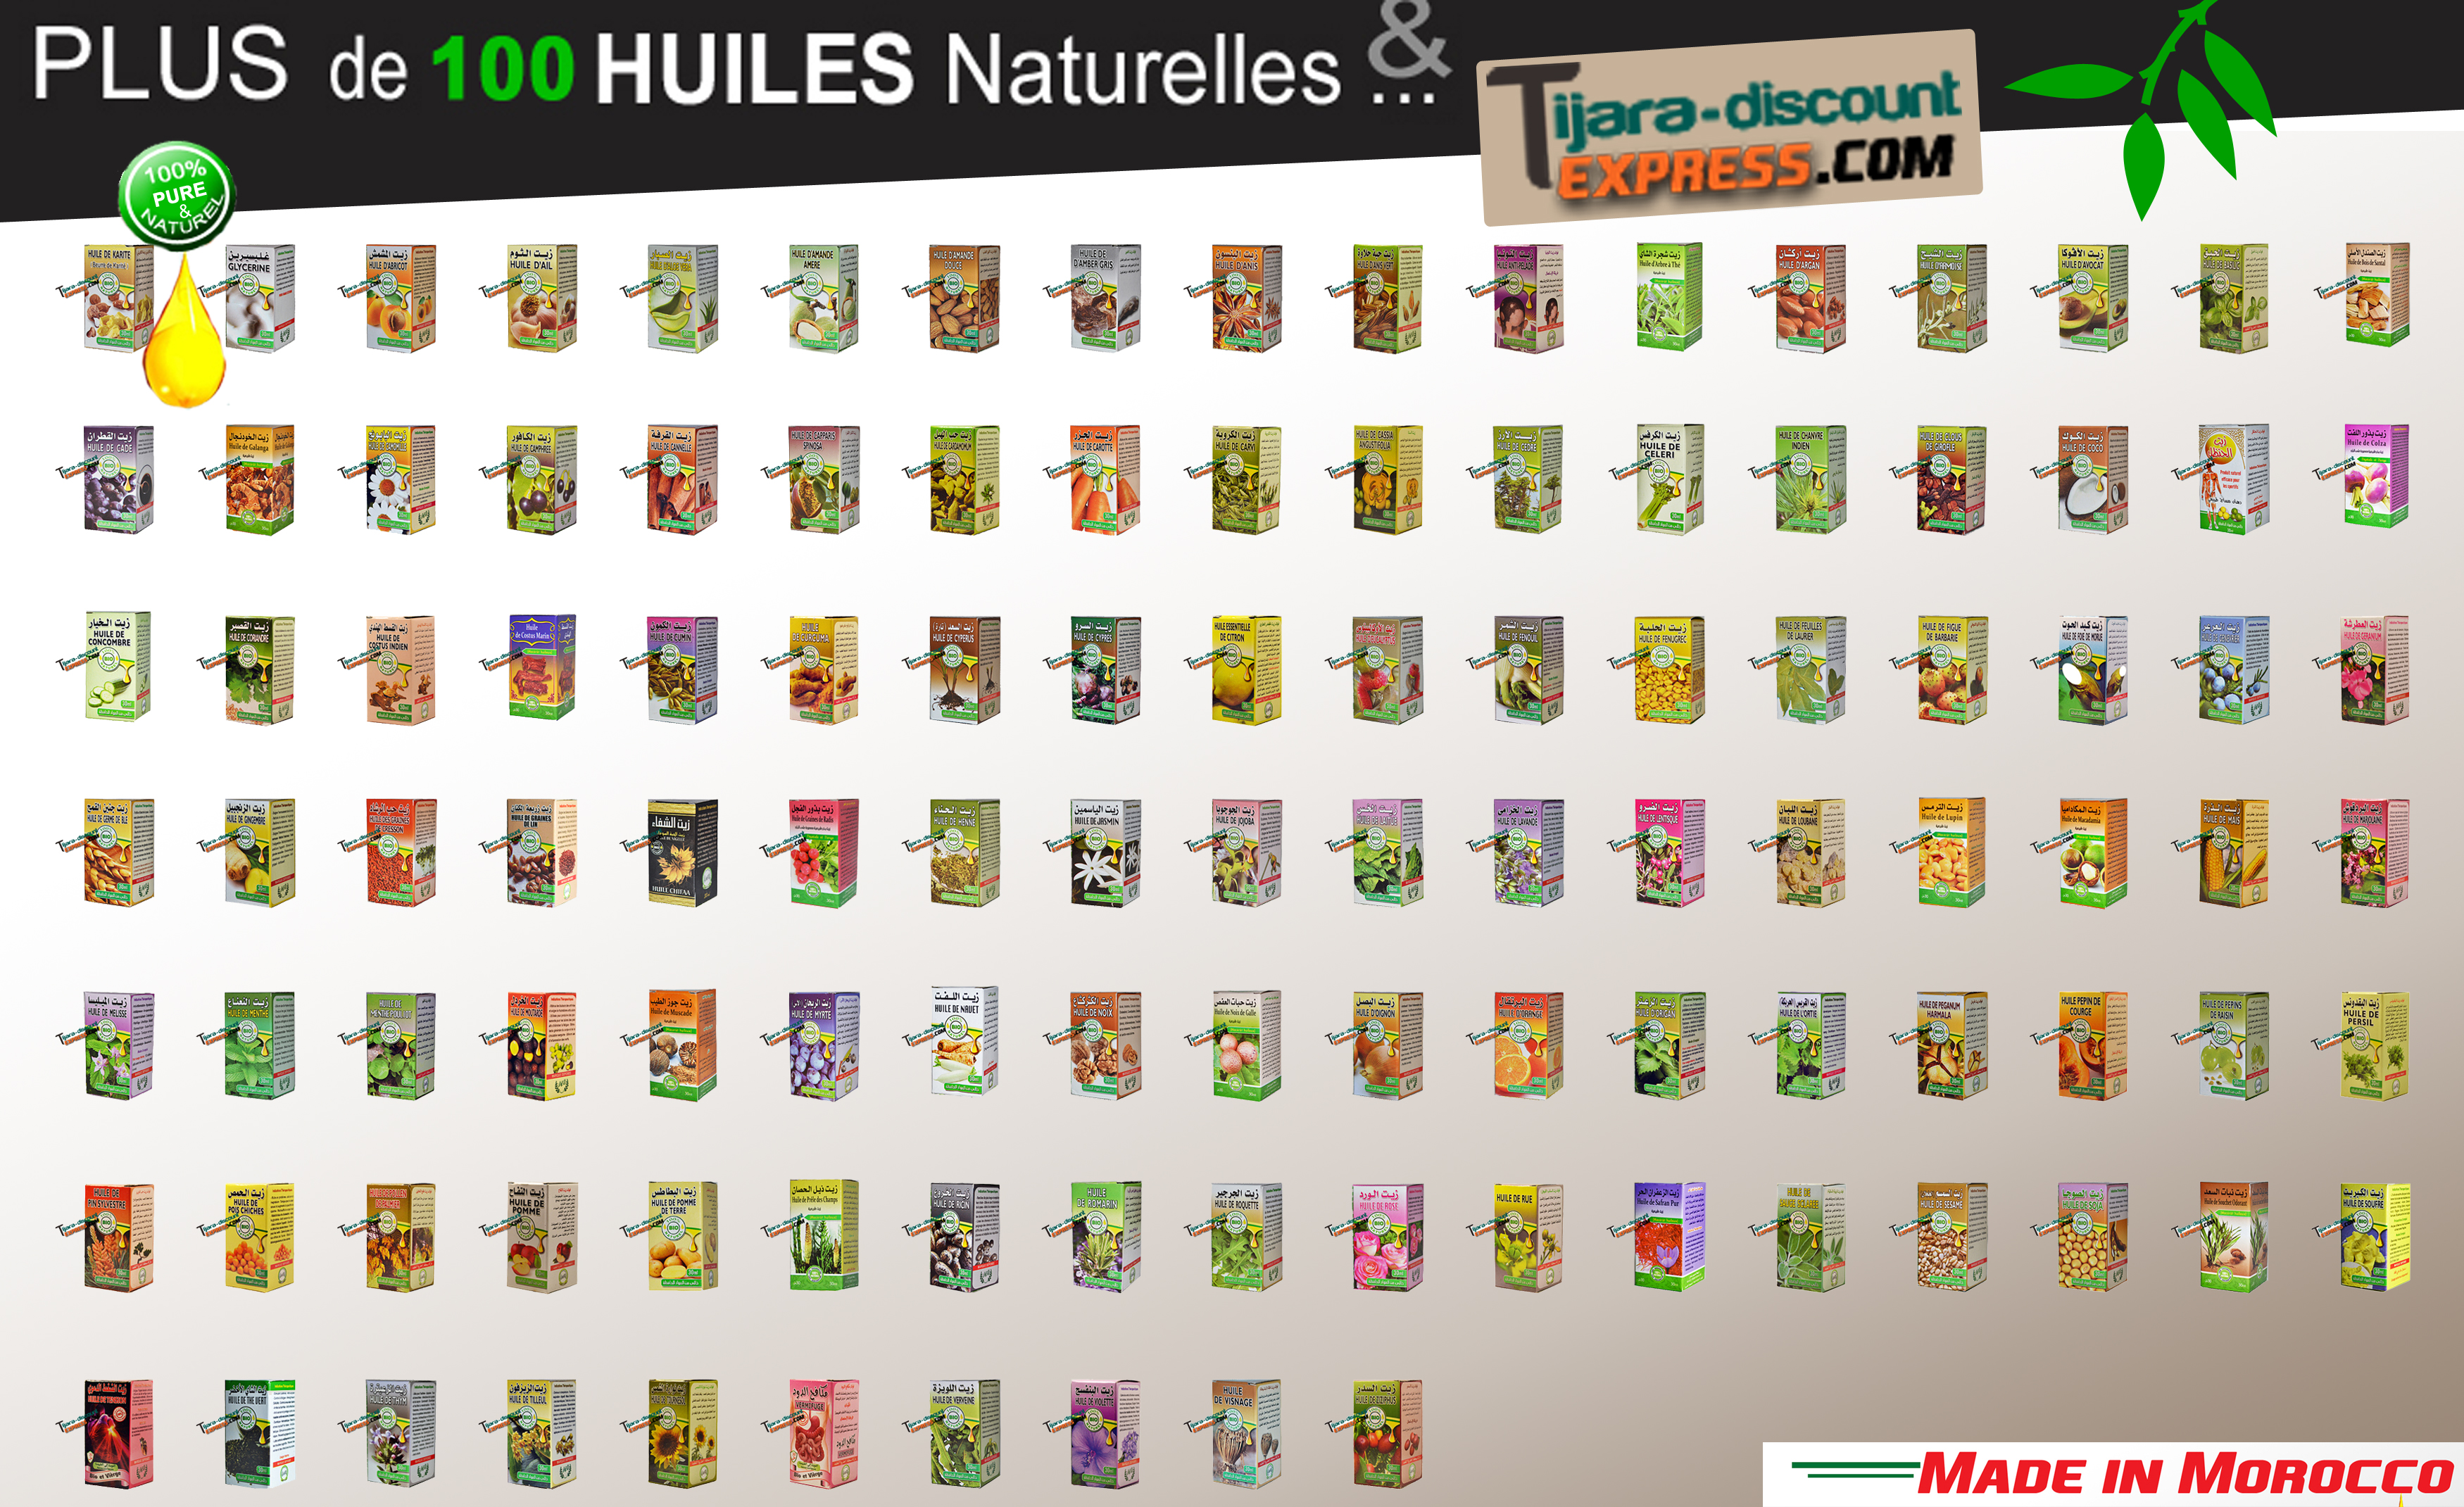 catalogue_huiles_vegetales.jpg